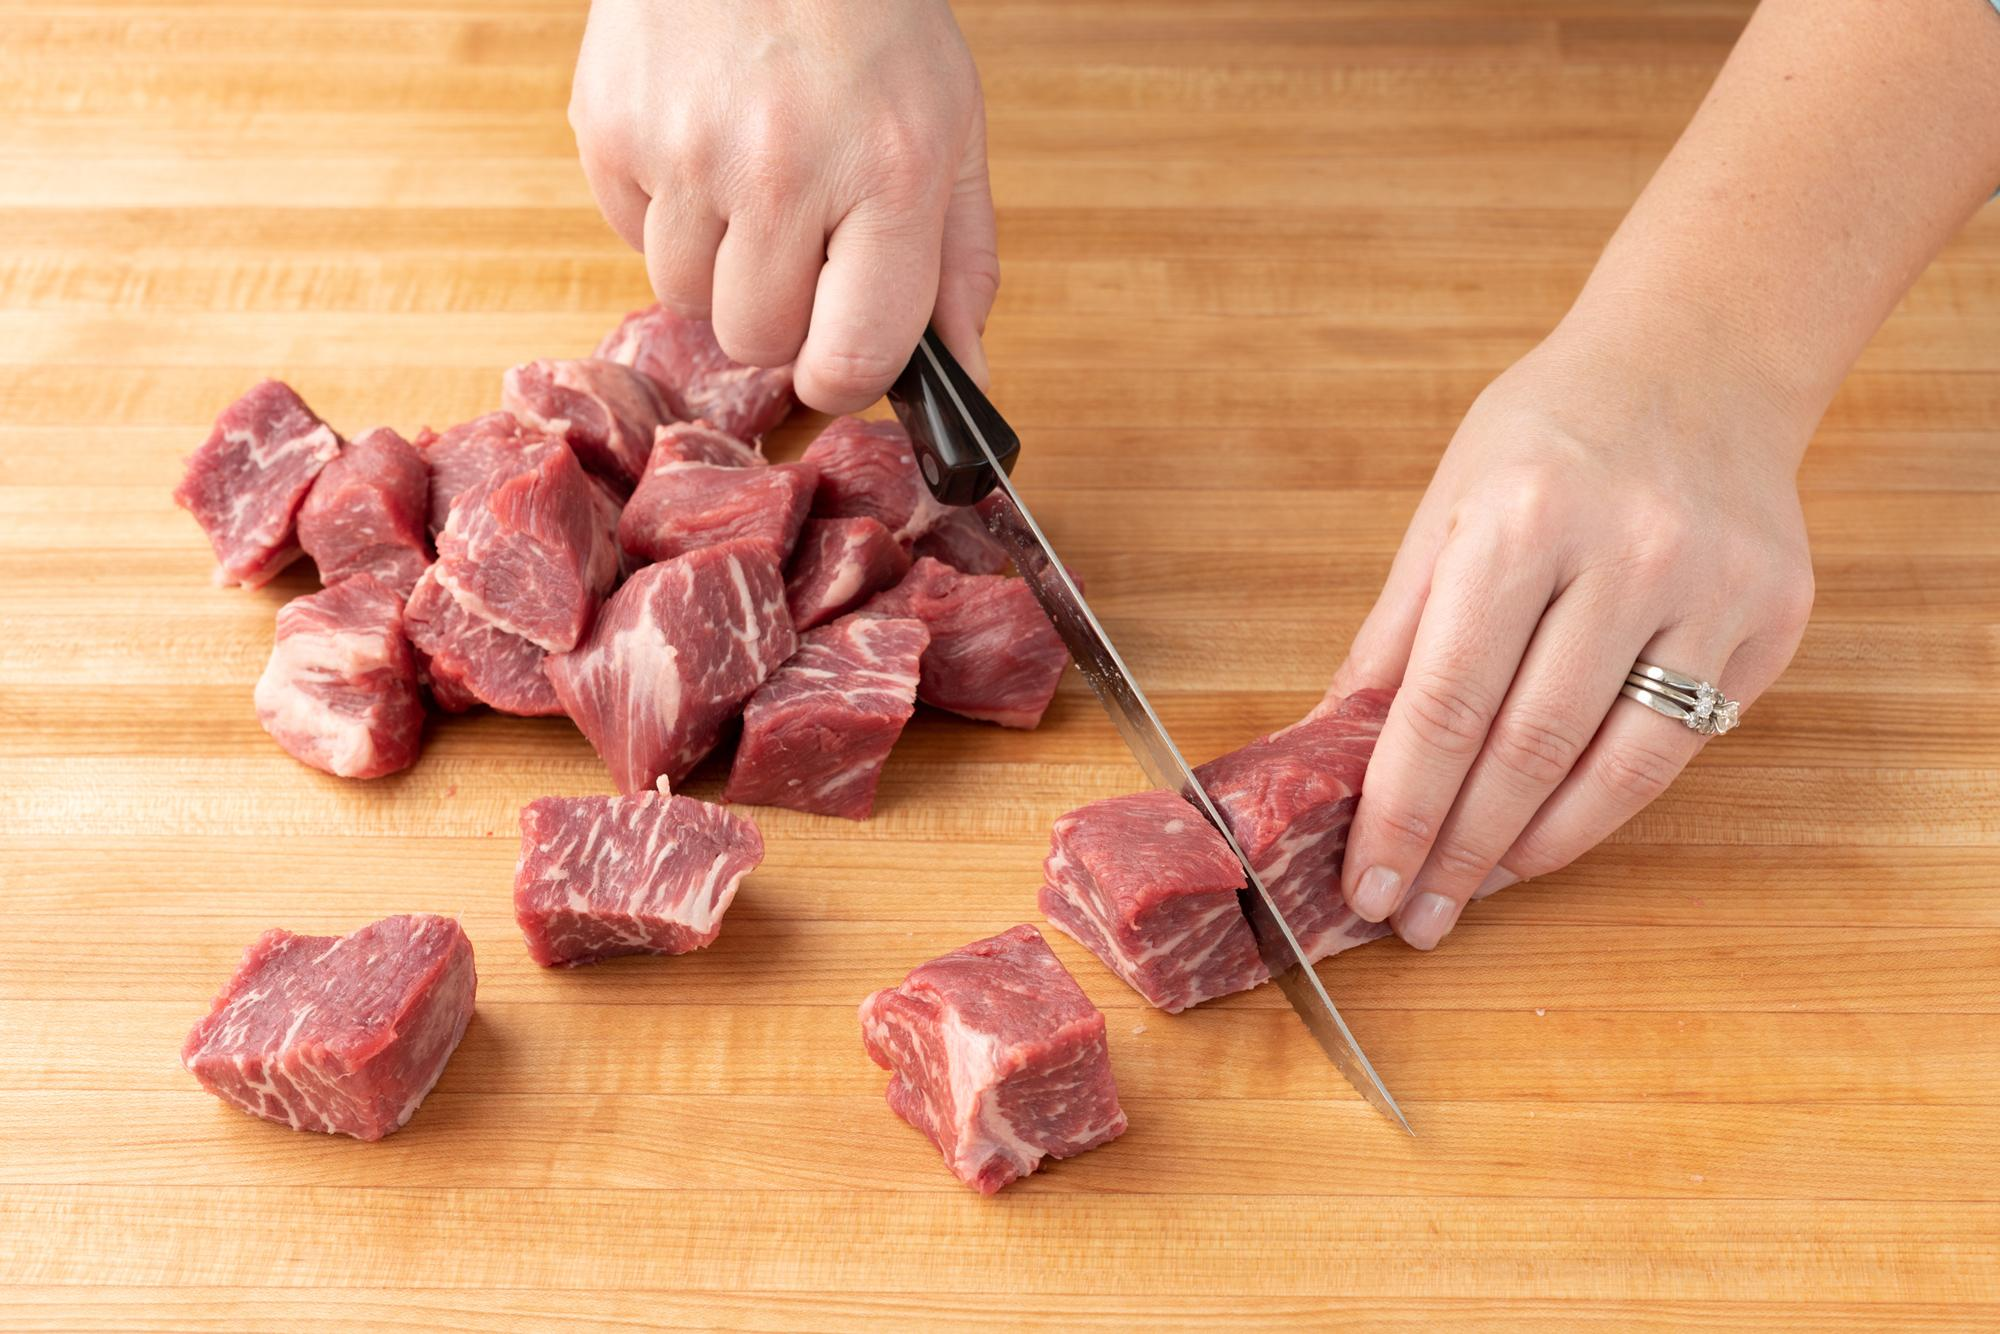 How to Cut Beef Tri-Tip into Cubes